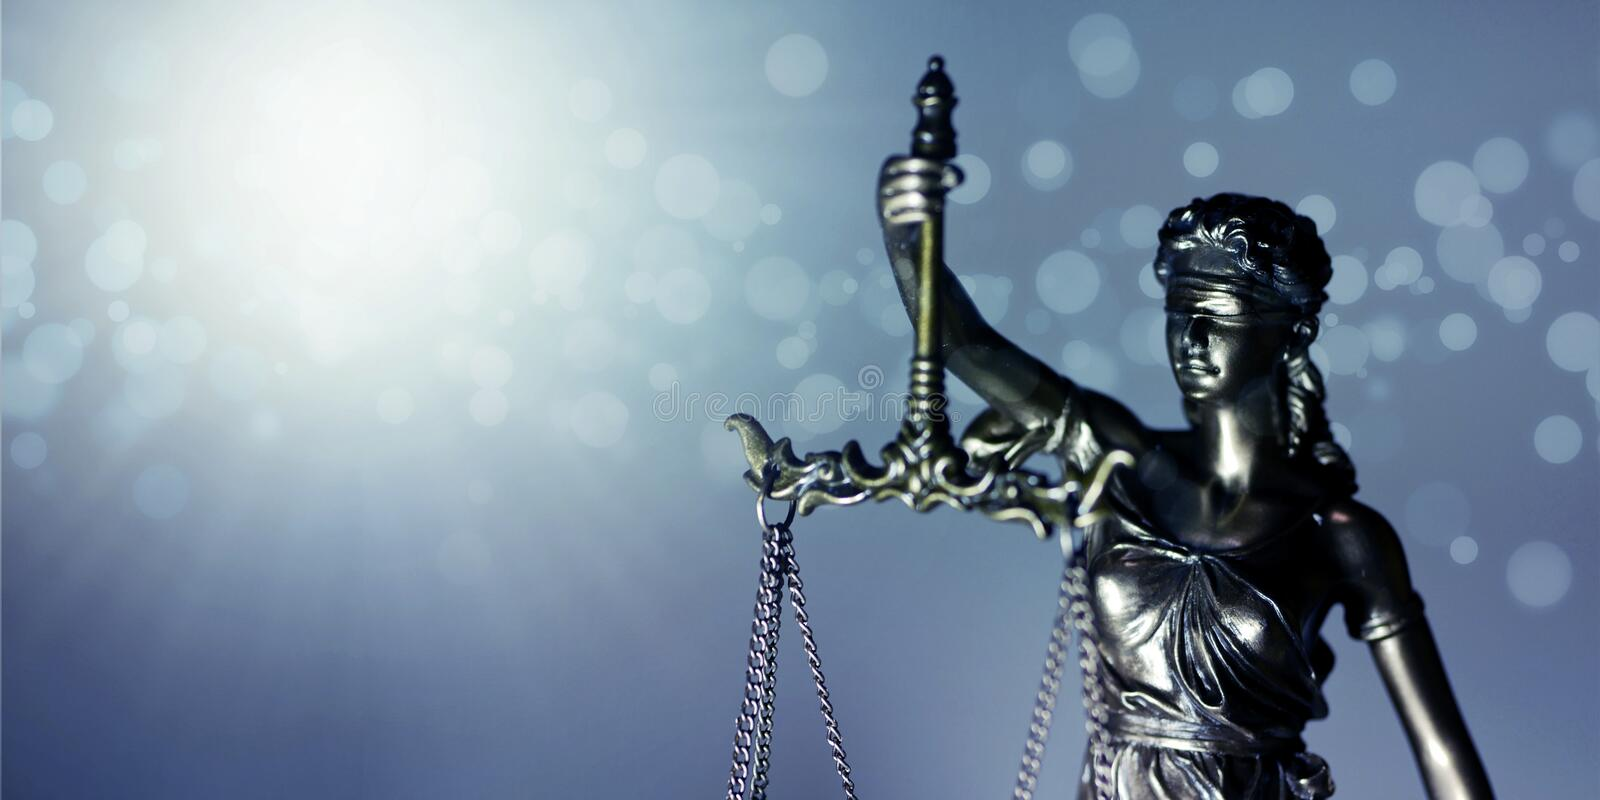 Statue of Themis - goddess of justice. Closeup image with copy space. royalty free stock photo